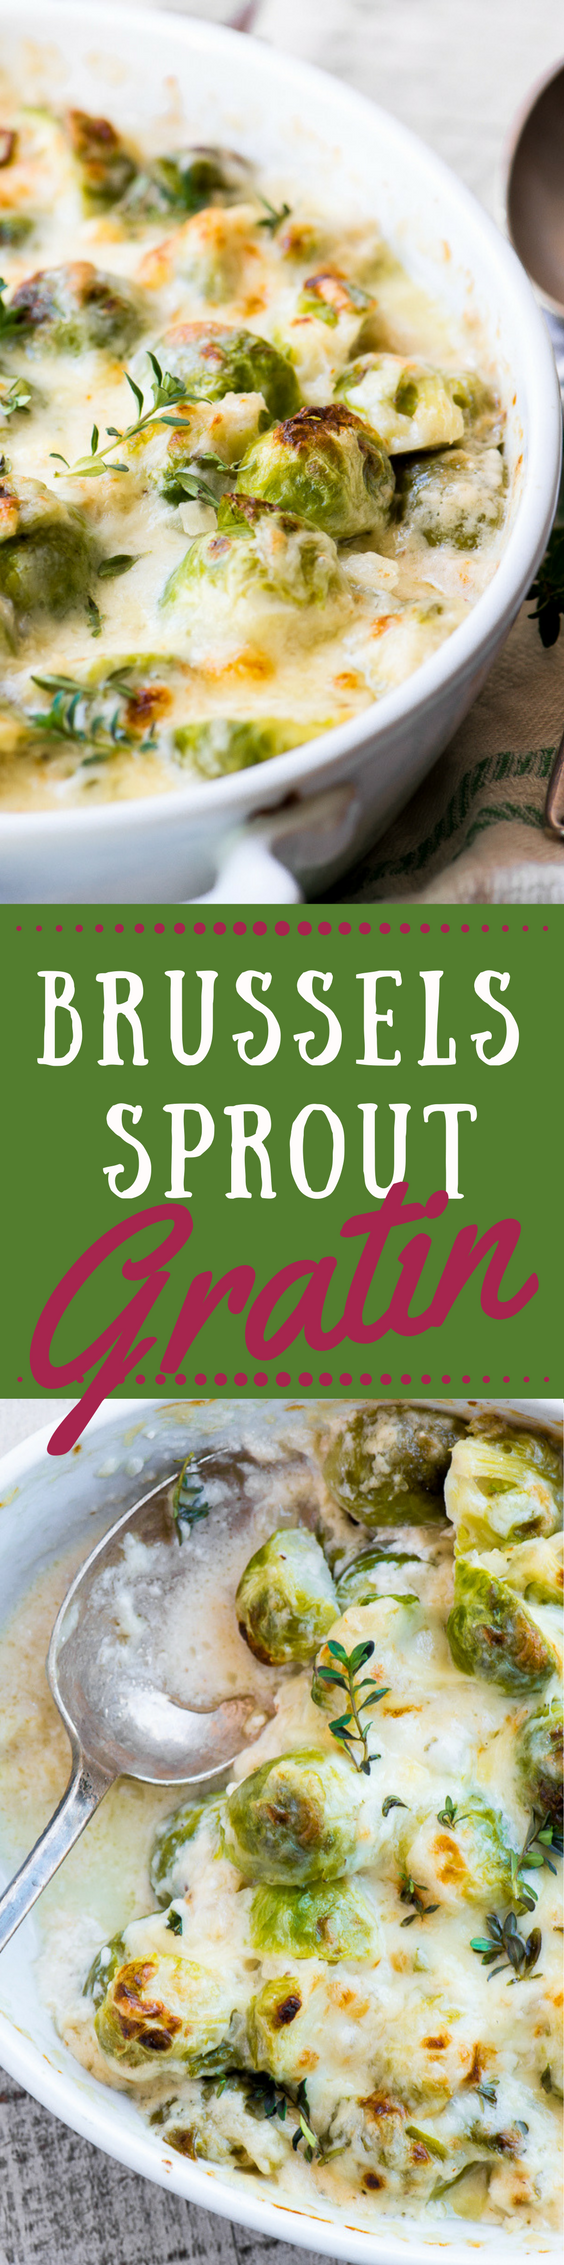 Cheesy Creamed Brussels Sprout Gratin ~ a luxurious side dish perfect for Thanksgiving and Christmas! ~ theviewfromgreatisland.com #brusselssprouts #bestbrusselssproutrecipe #holidaysidedish #gratin #vegetable #fallsidedish #bestbrusselssprouts #thanksgiving #Christmas #recipe